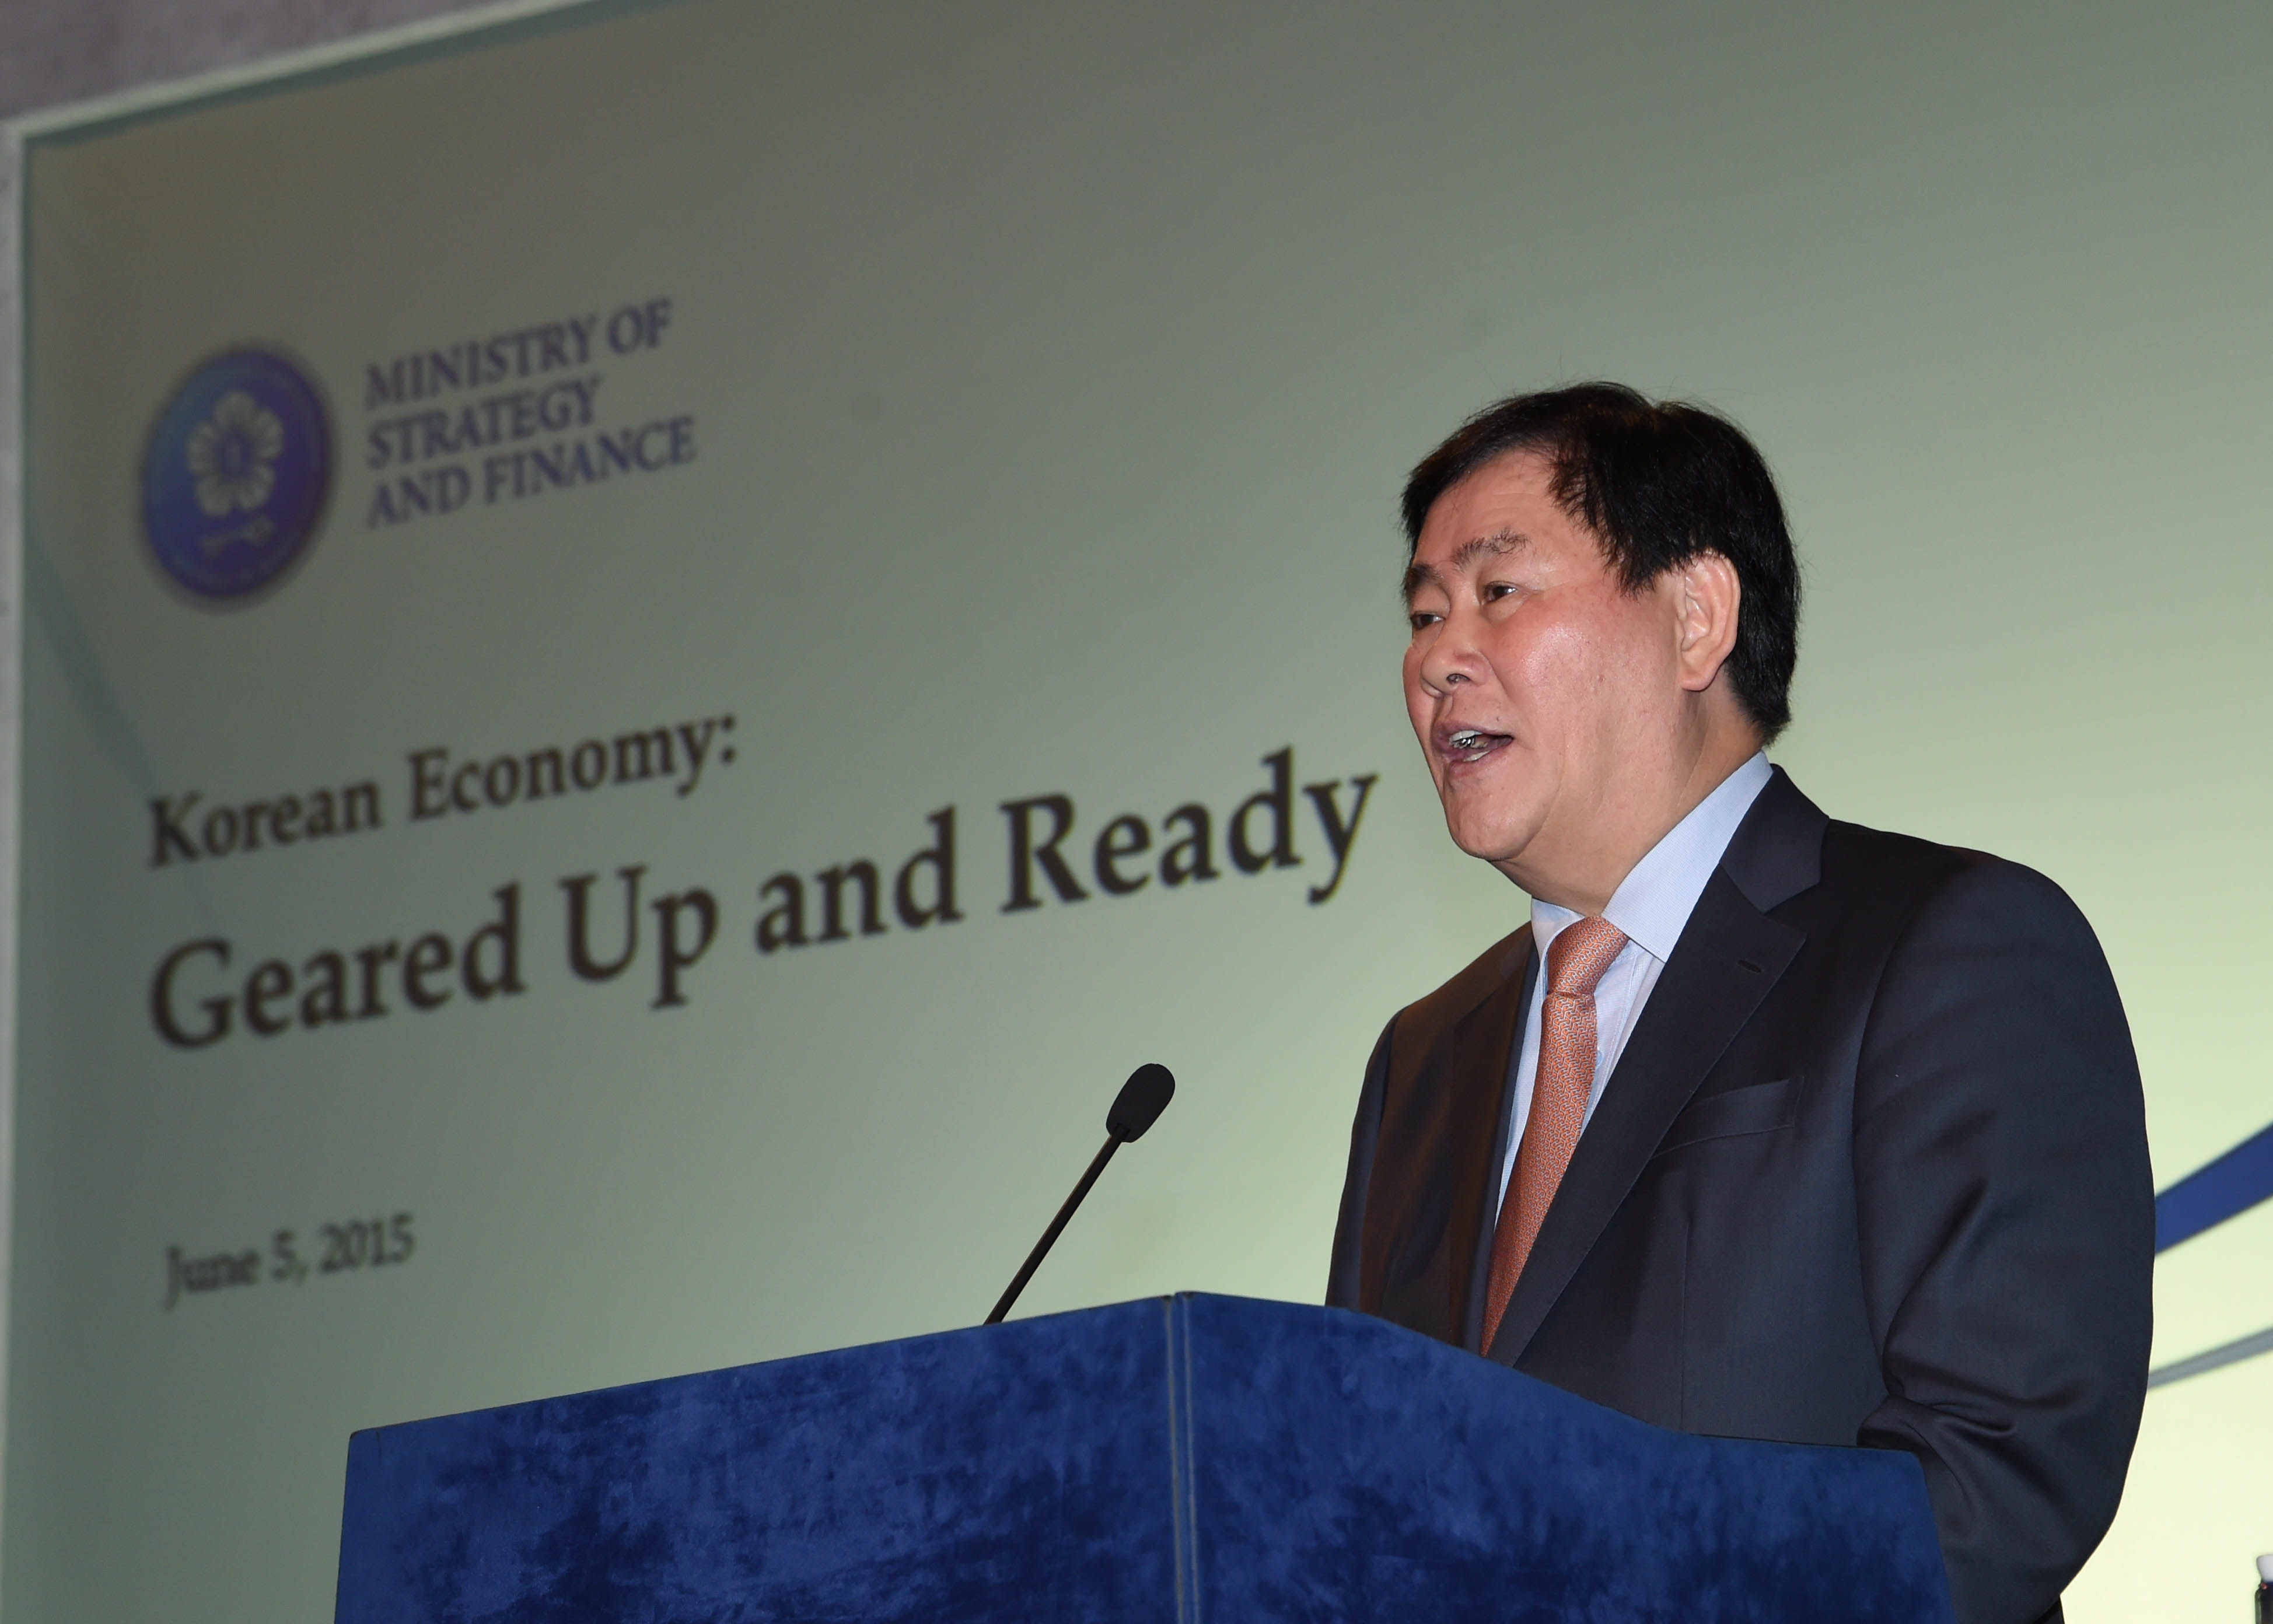 Deputy Prime Minister Choi holds Investor Relations Meeting in London